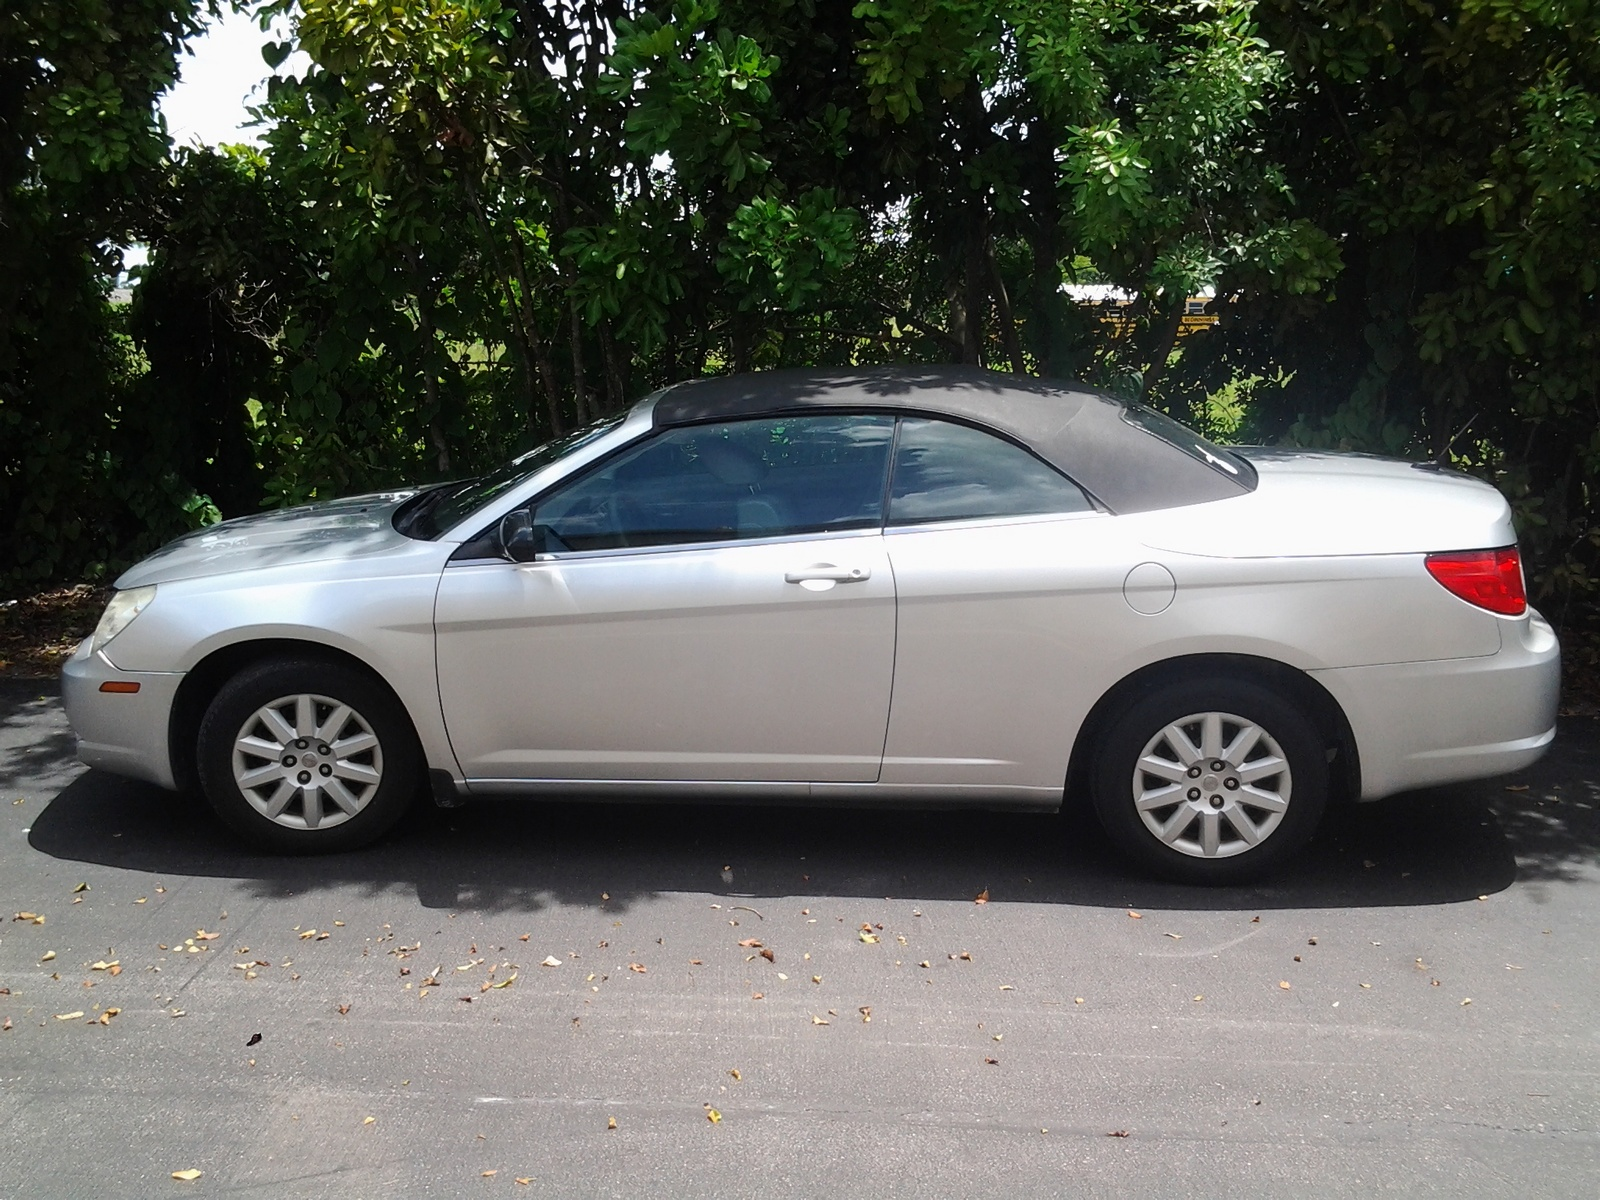 picture of 2008 chrysler sebring lx convertible exterior. Cars Review. Best American Auto & Cars Review